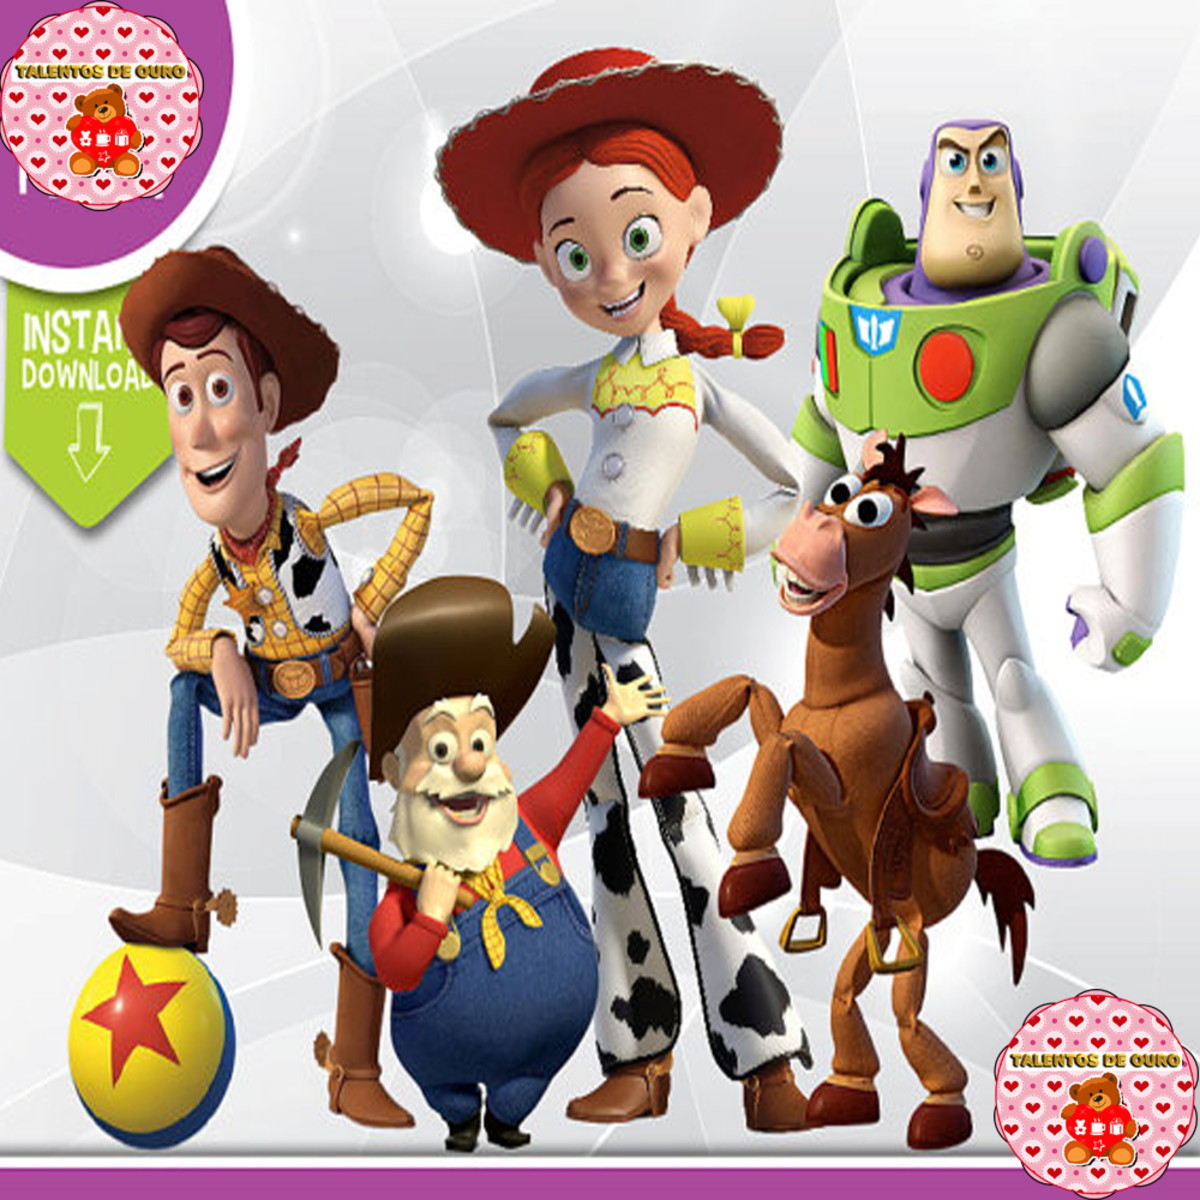 Toy story personagens clipart png Kit Digital Toy Story Vários Personagens Xerife Woody Buzz png